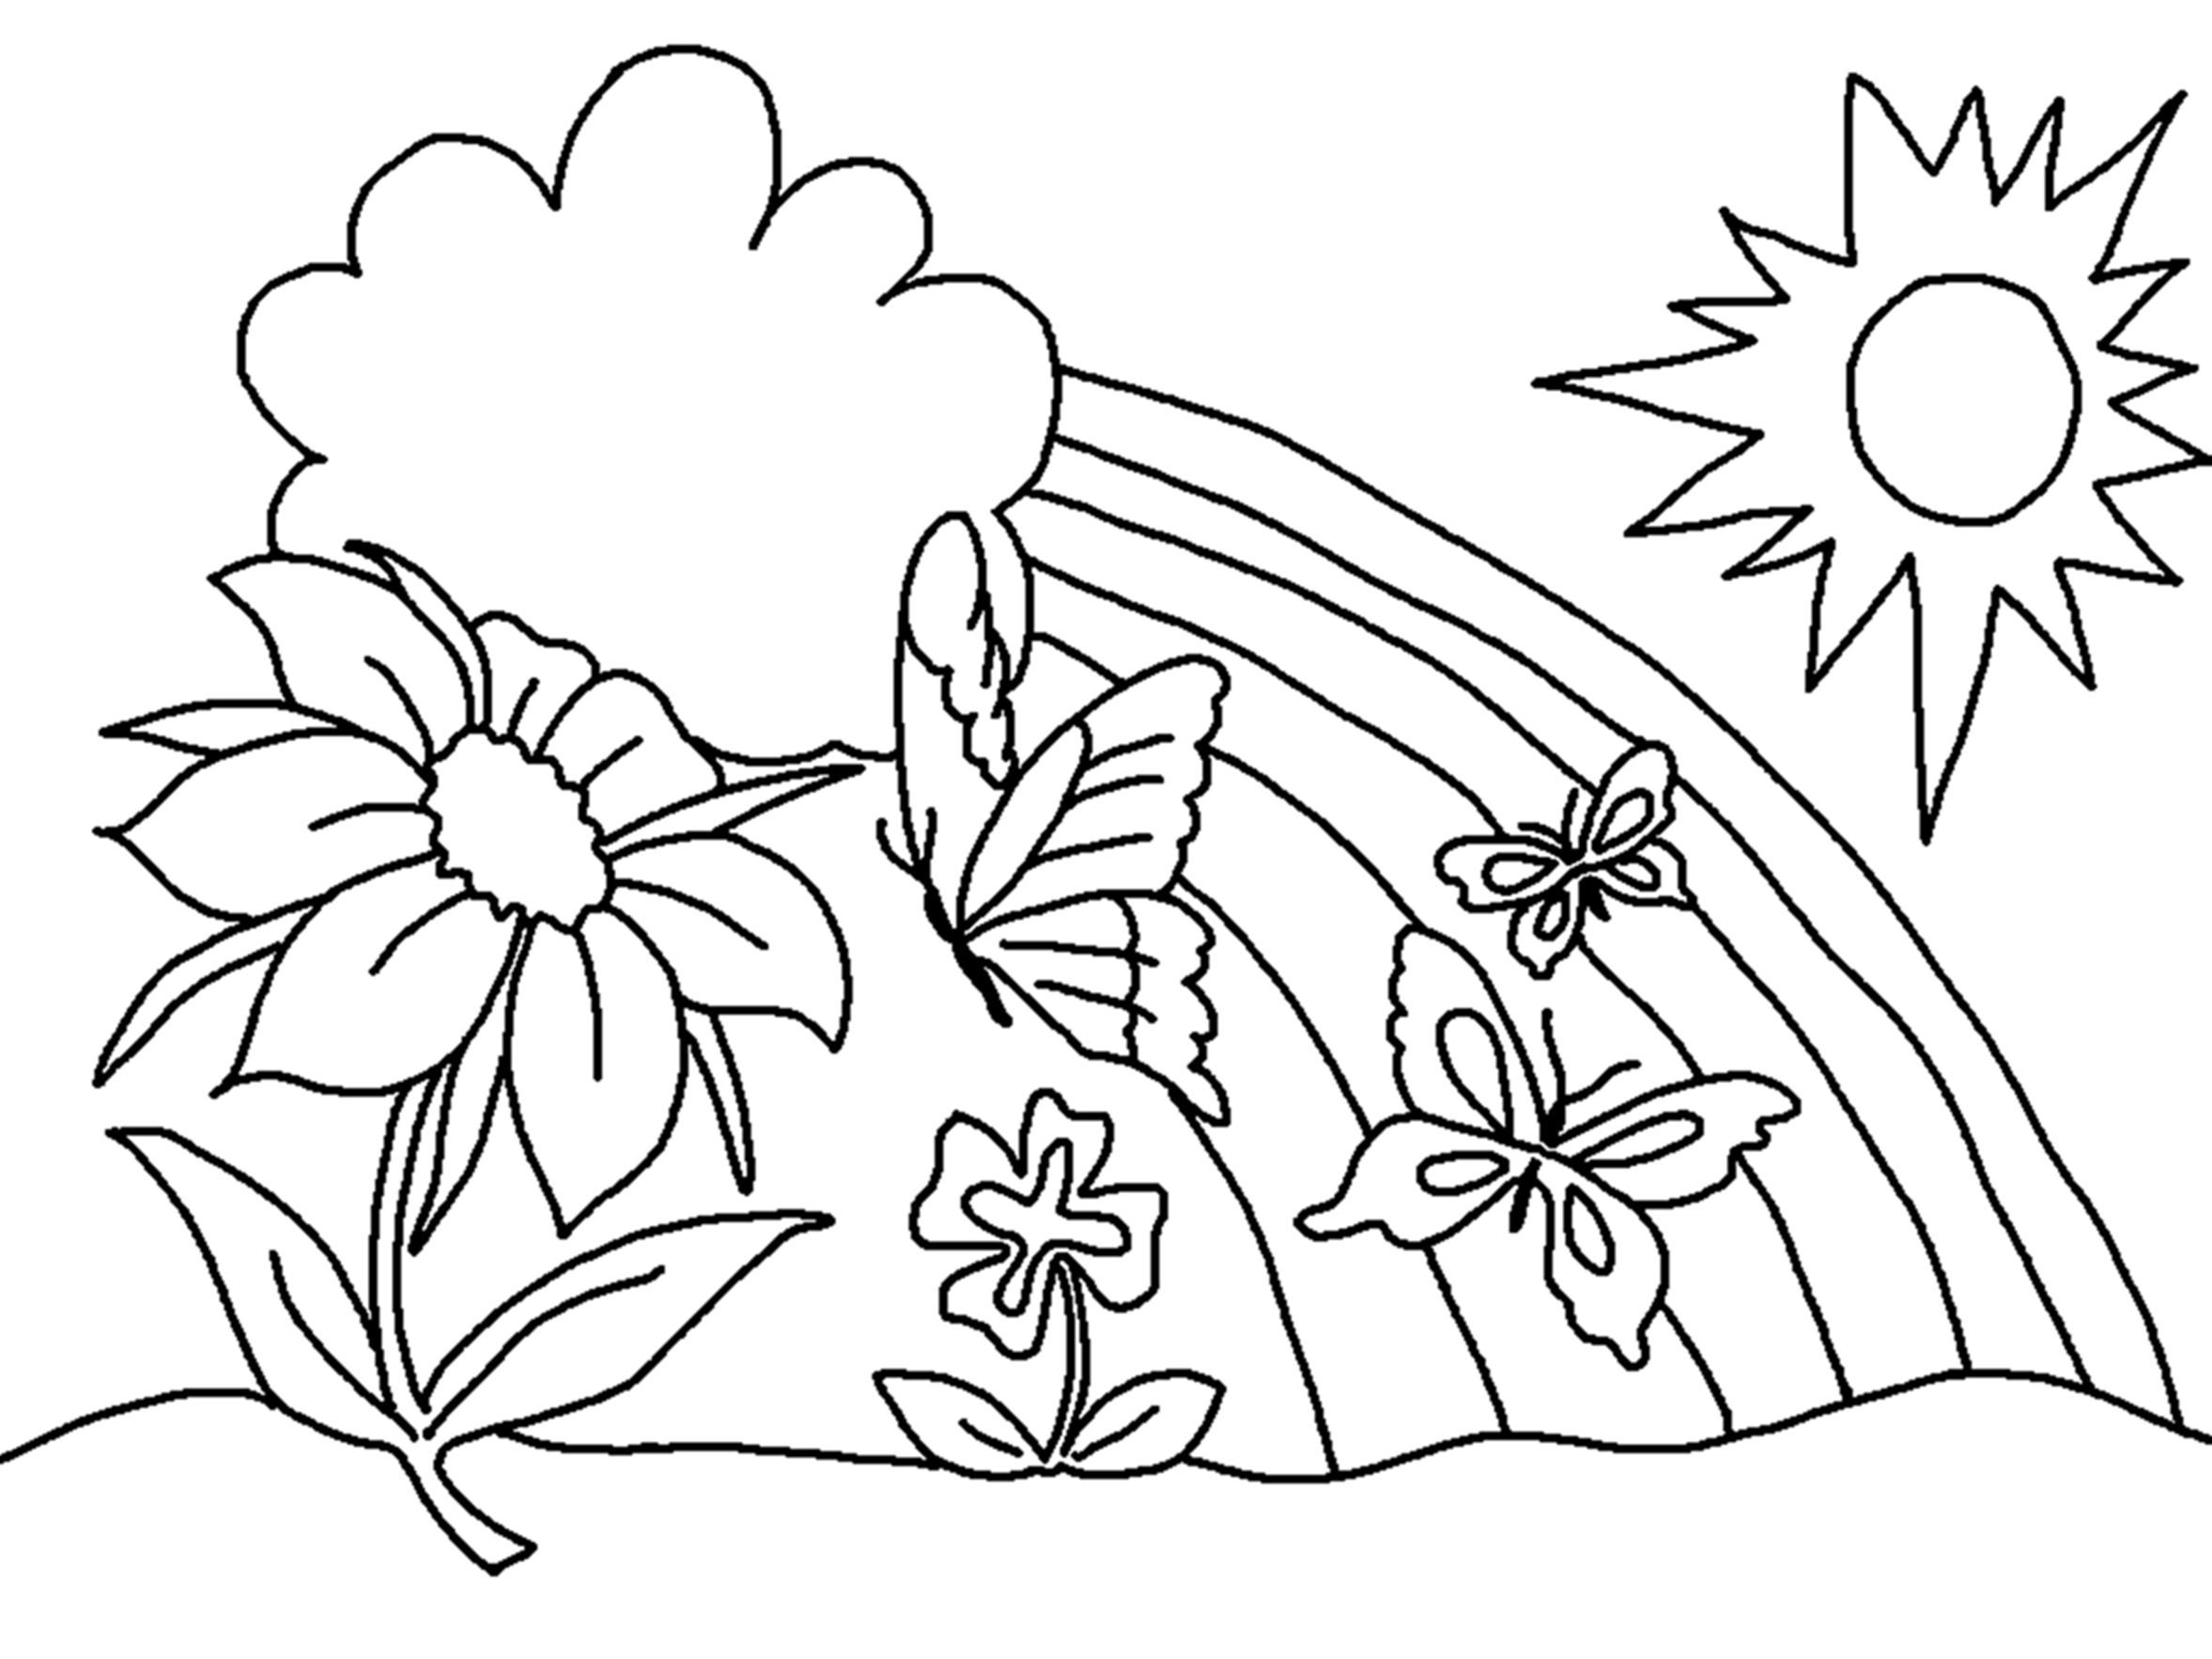 Coloring printouts flowers - Download Free Flower Coloring Page